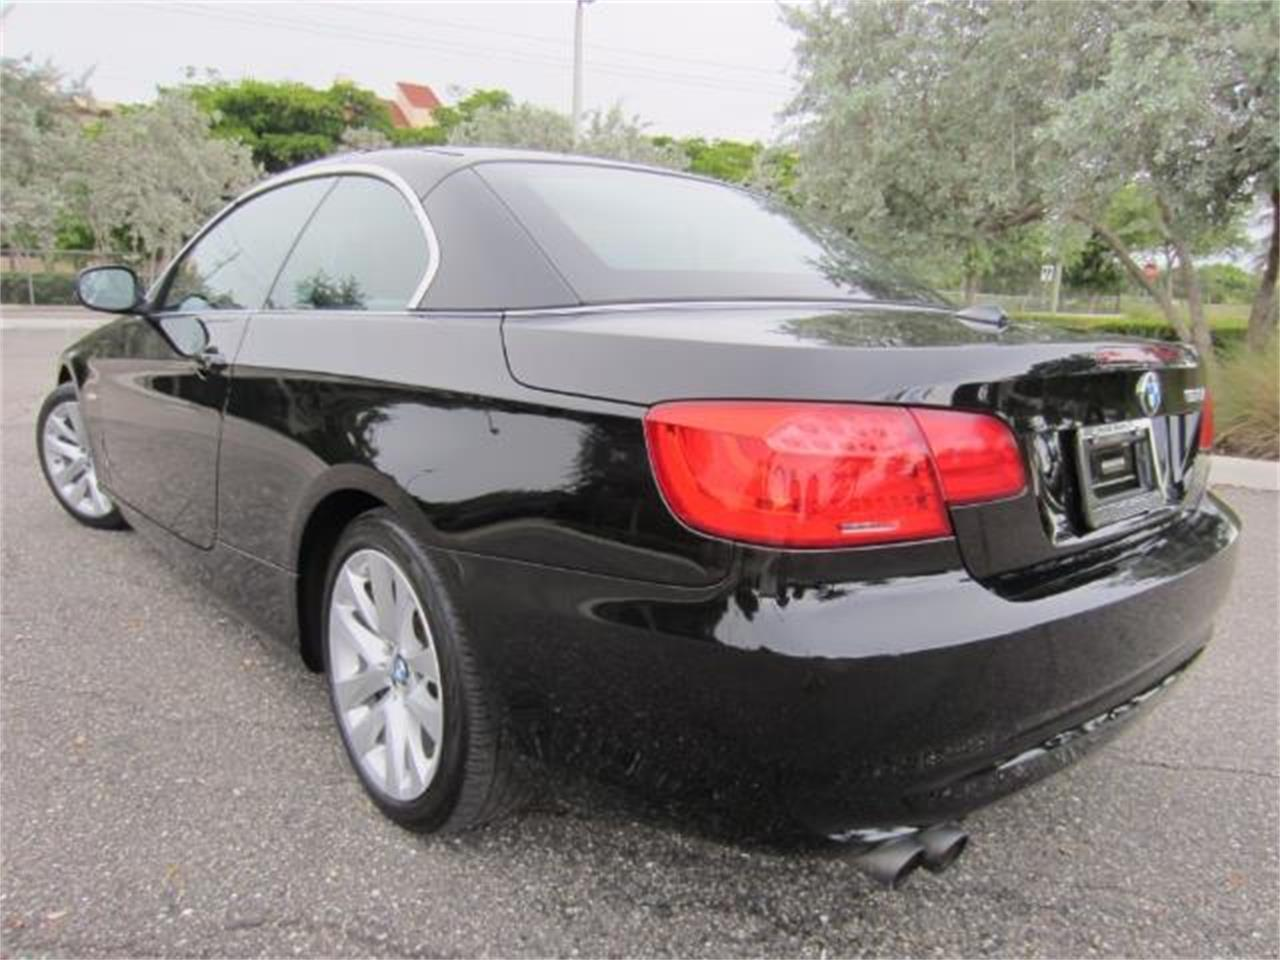 2011 BMW 328i for sale in Delray Beach, FL – photo 22